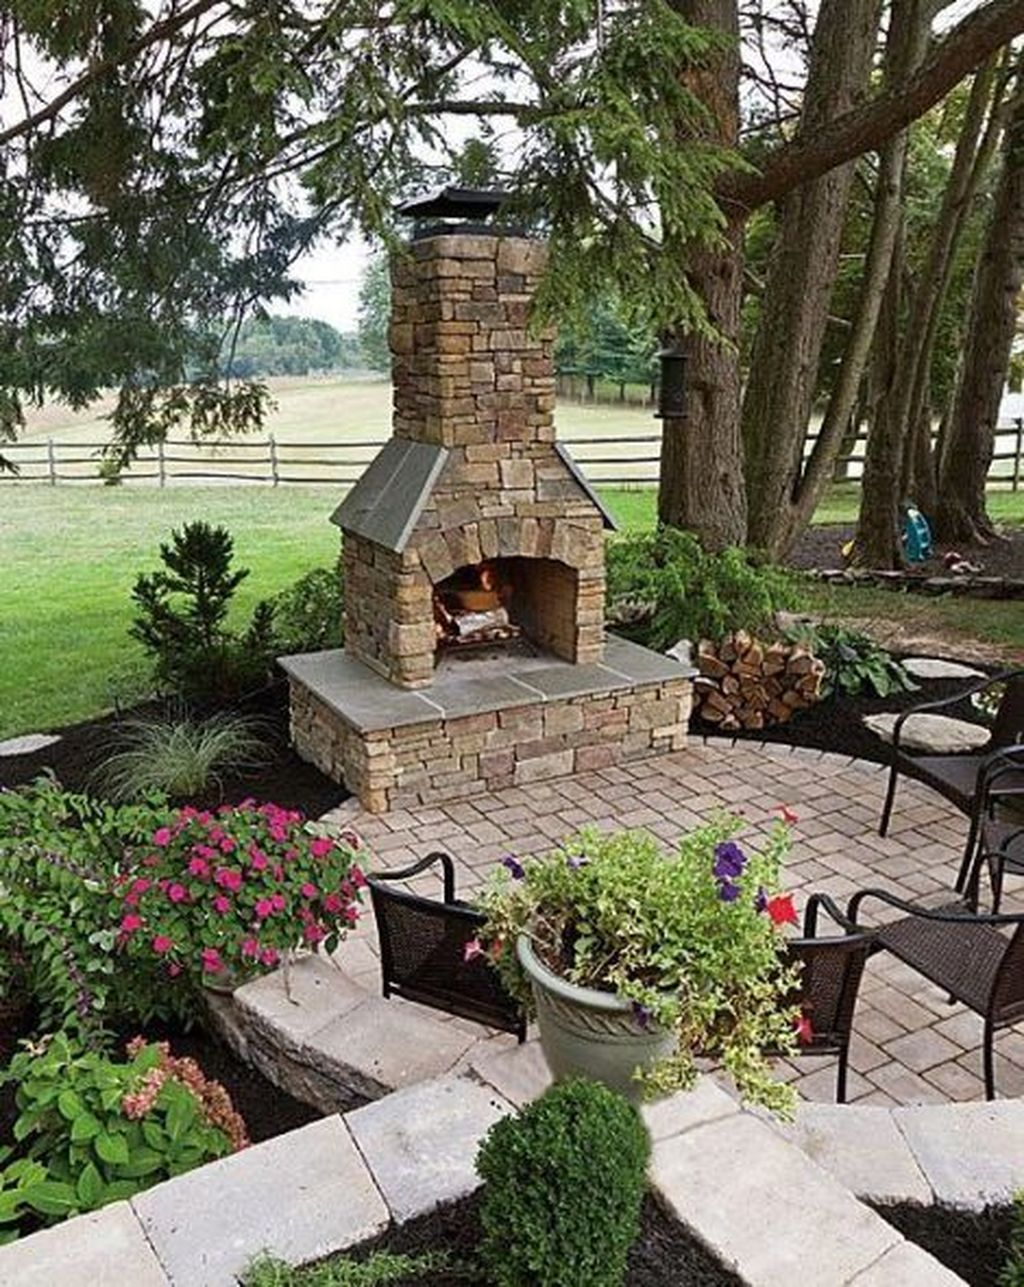 The Best Backyard Fireplace Design Ideas You Must Have 18